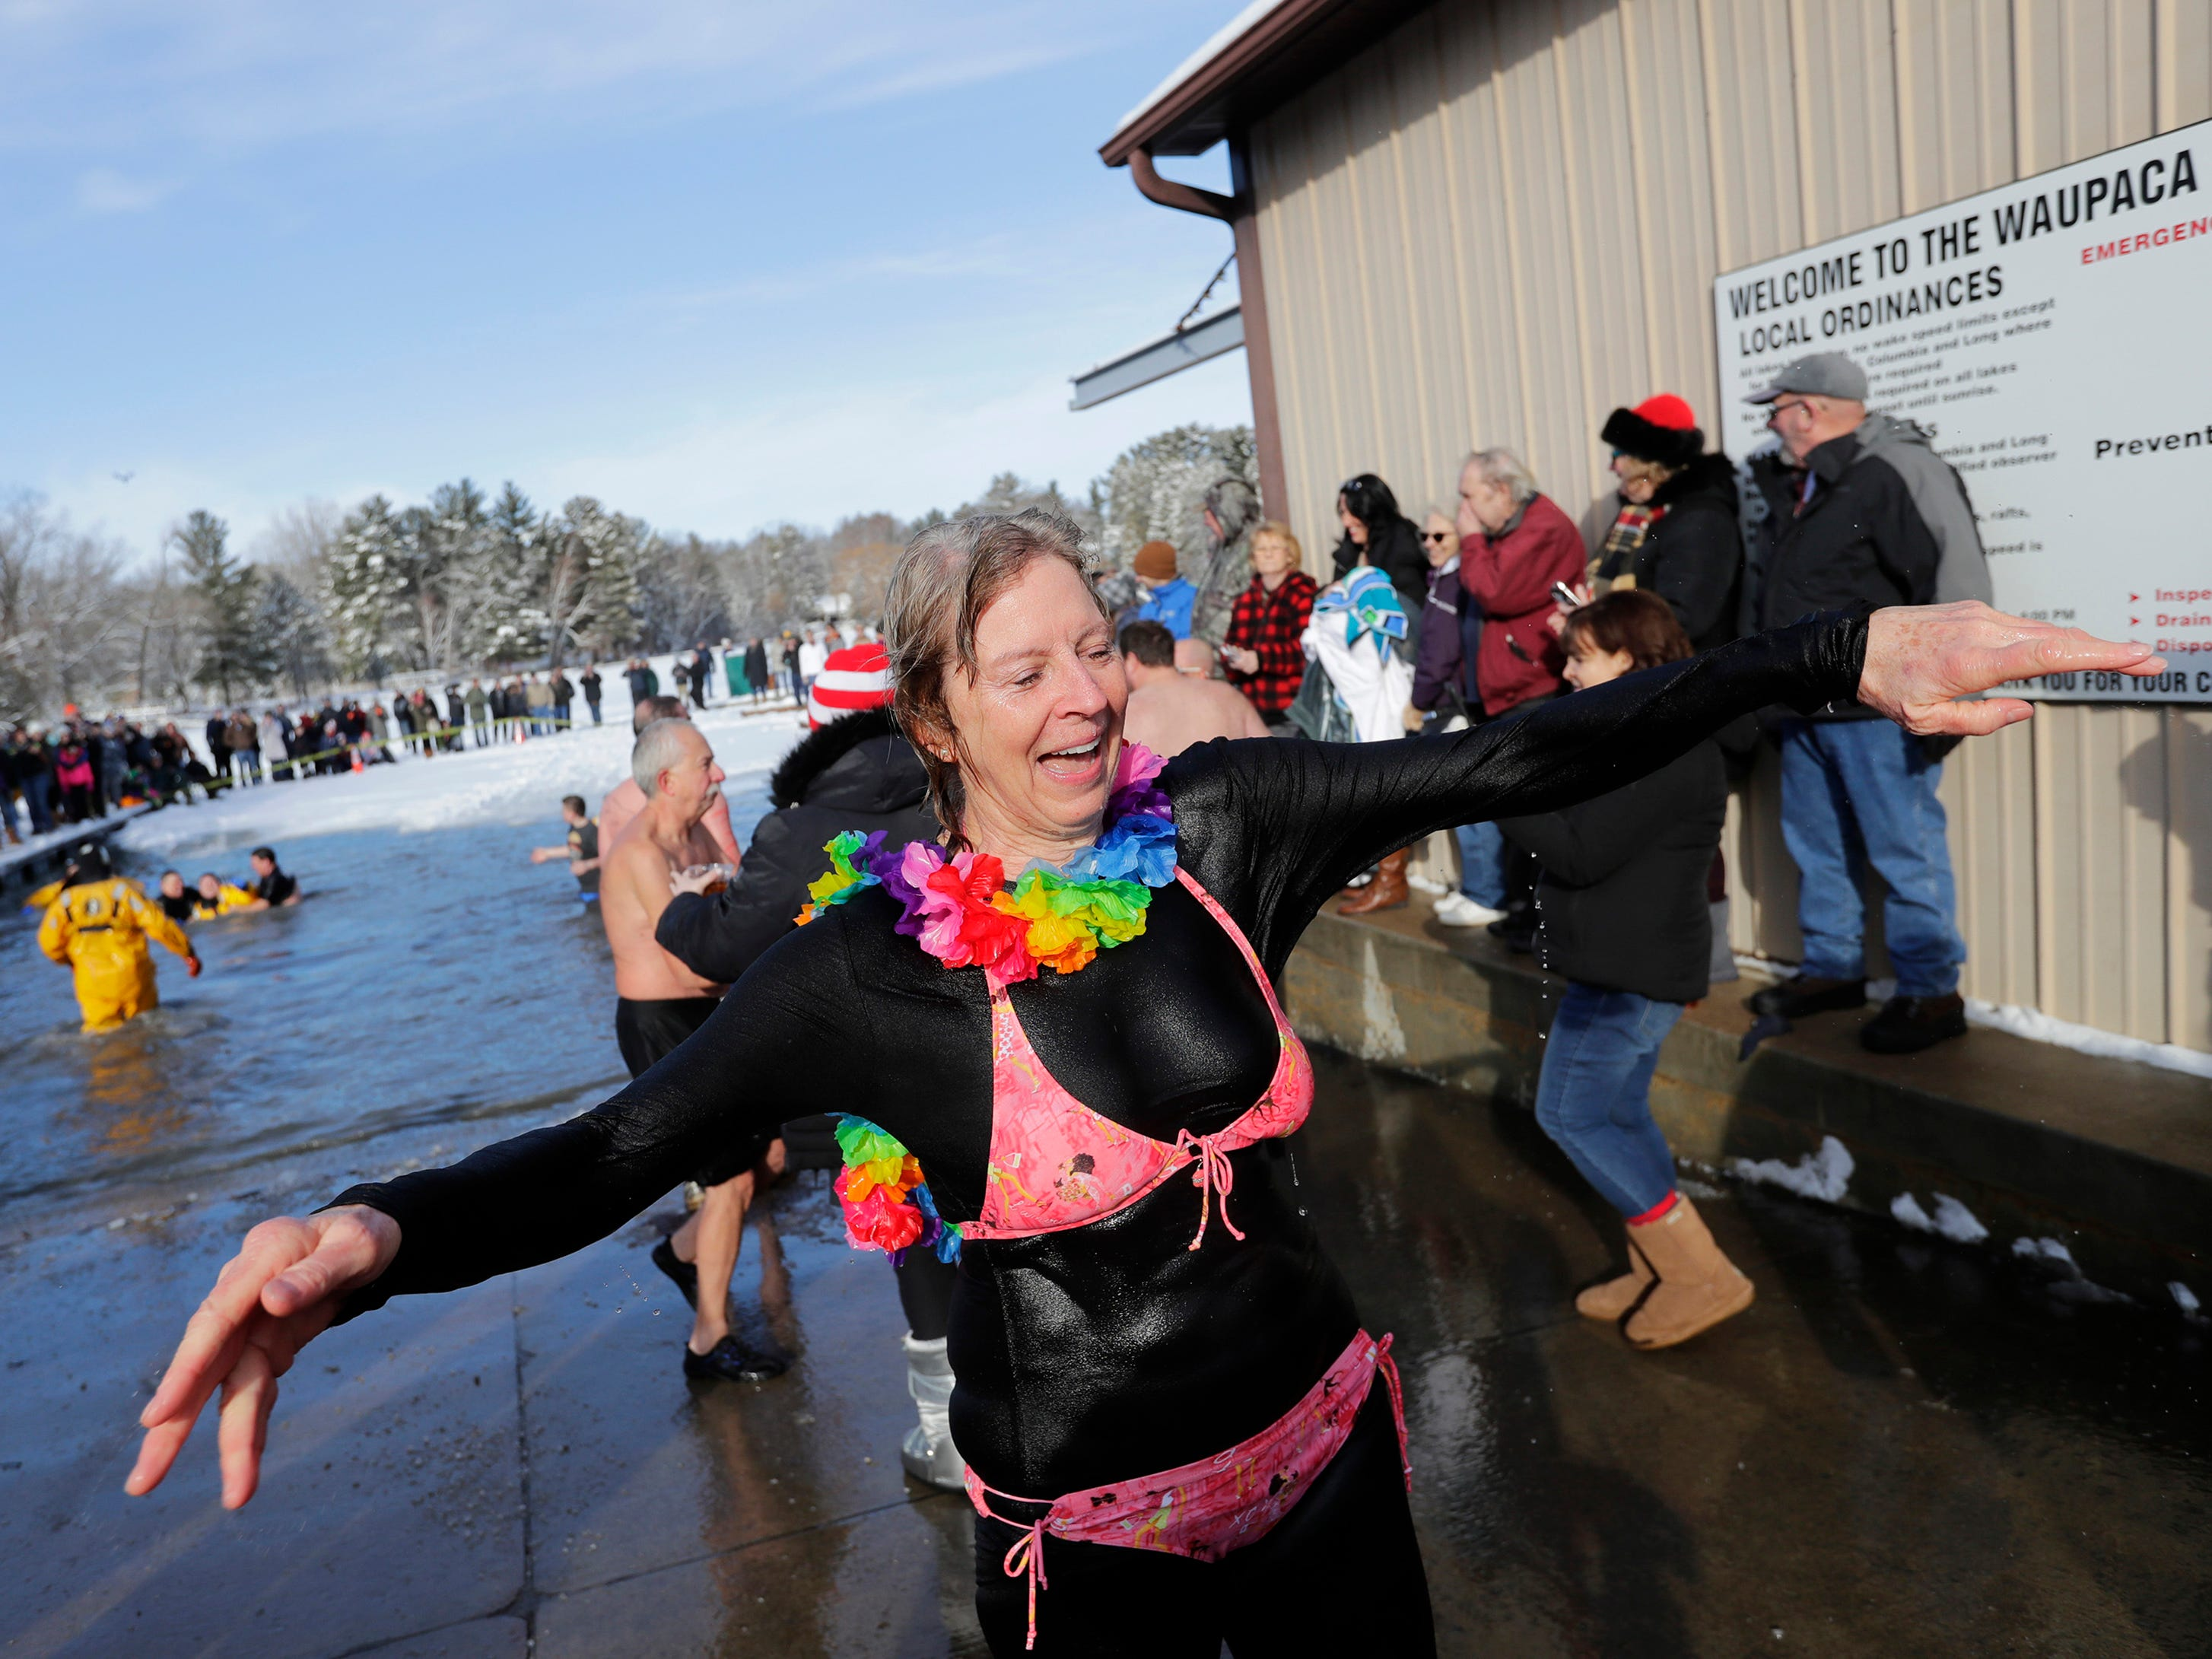 Sara Bredesen emerges from the cold water during the Polar Bear Plunge at Becker Marine on Lime Kiln Lake in Waupaca, Wis.